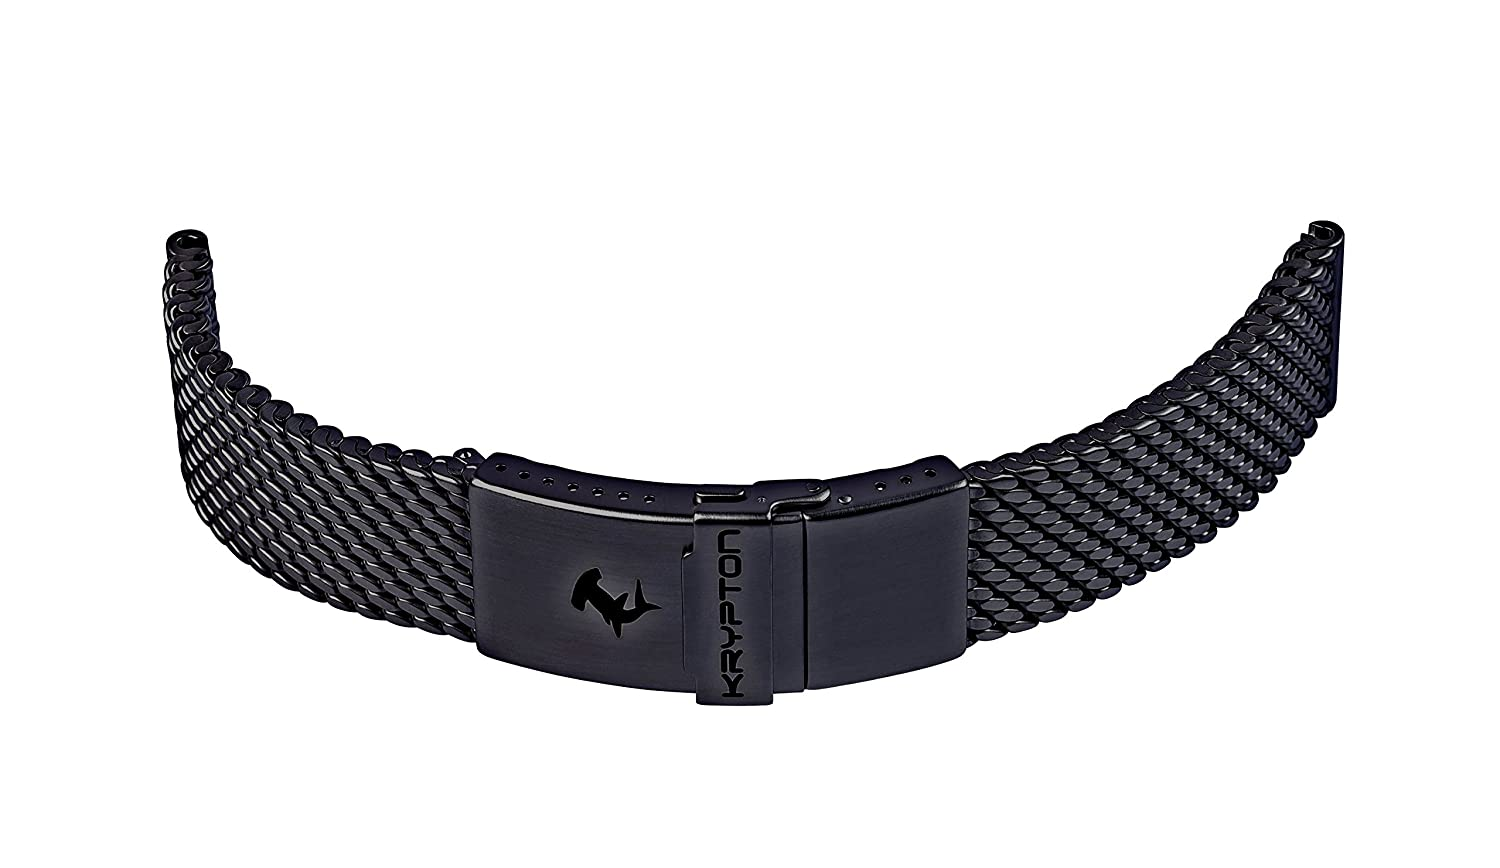 KRYPTON Uhrenarmband Milanaise DLC 22mm